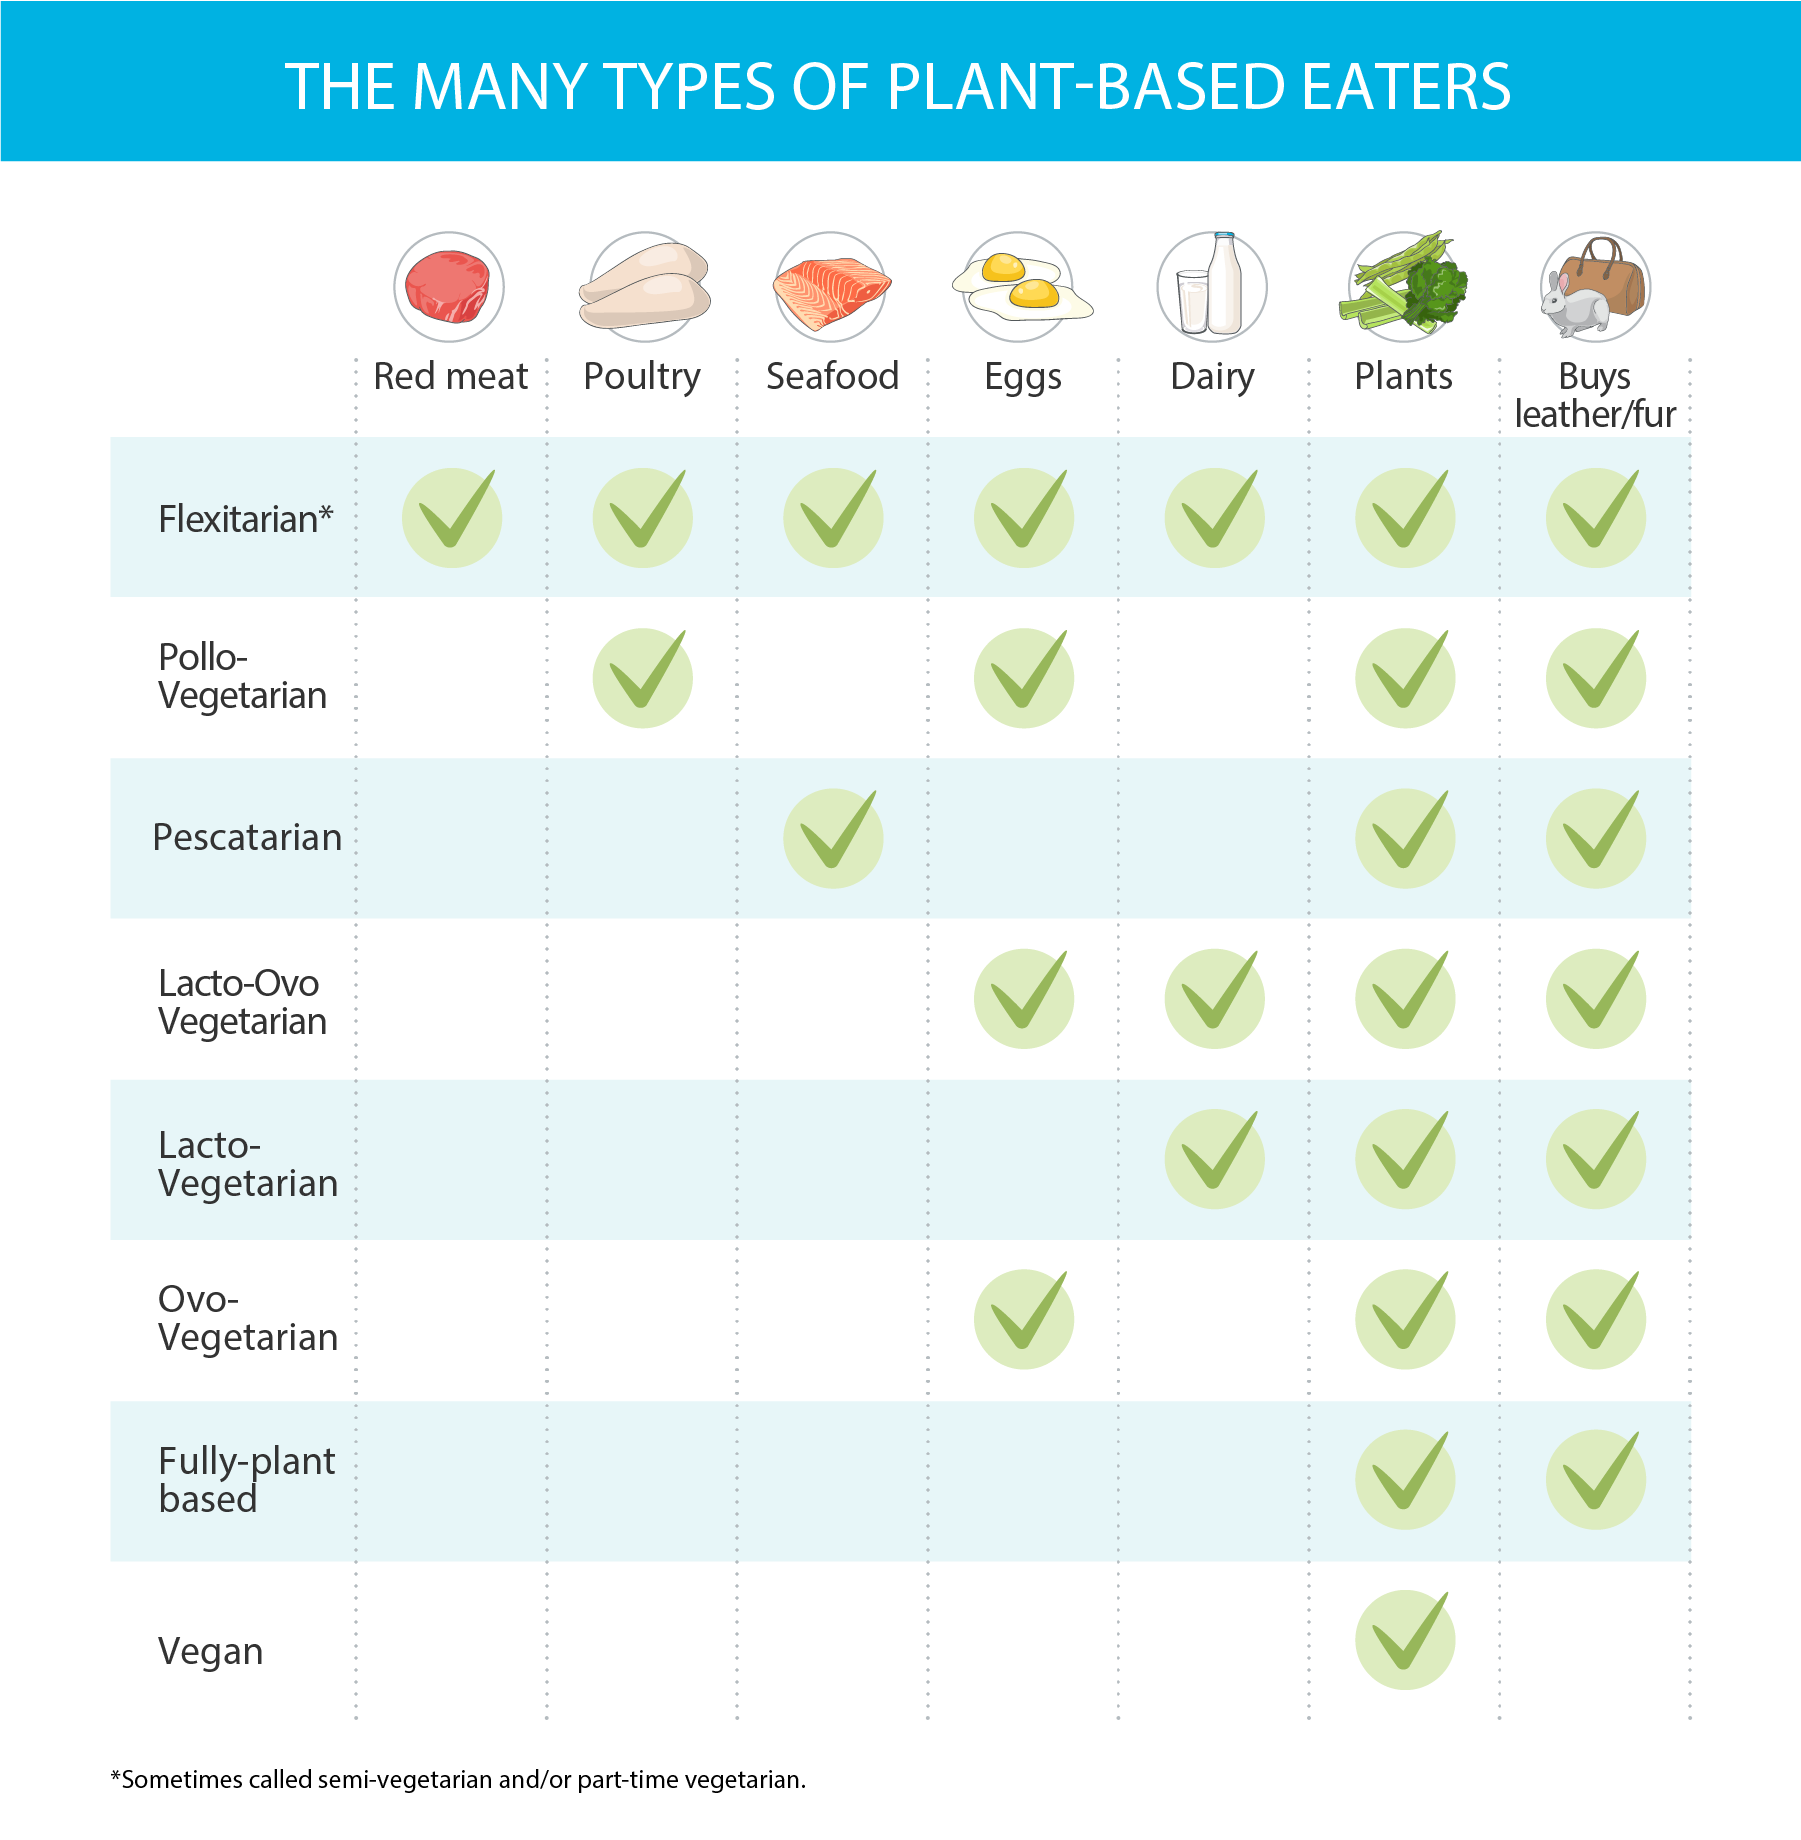 Chart shows what different types of plant-based eaters are willing to eat and/or do. 1) Flexitarian: red meat, poultry, seafood, eggs, dairy, plants, buy leather/furs; 2) Pollo-vegetarian: poultry, eggs, plants, buy leather/furs; 3) Pescatarian: seafood, plants, buy leather/furs; 4) Lacto-ovo vegetarian: eggs, dairy, plants, buy leather/furs; 5) Lacto-vegetarian: dairy, plants, buy leather/furs; 6) Ovo-vegetarian: eggs, plants, buy leather/furs; 7) Fully-plant based: plants, buy leather/furs; 8) Vegan: plants